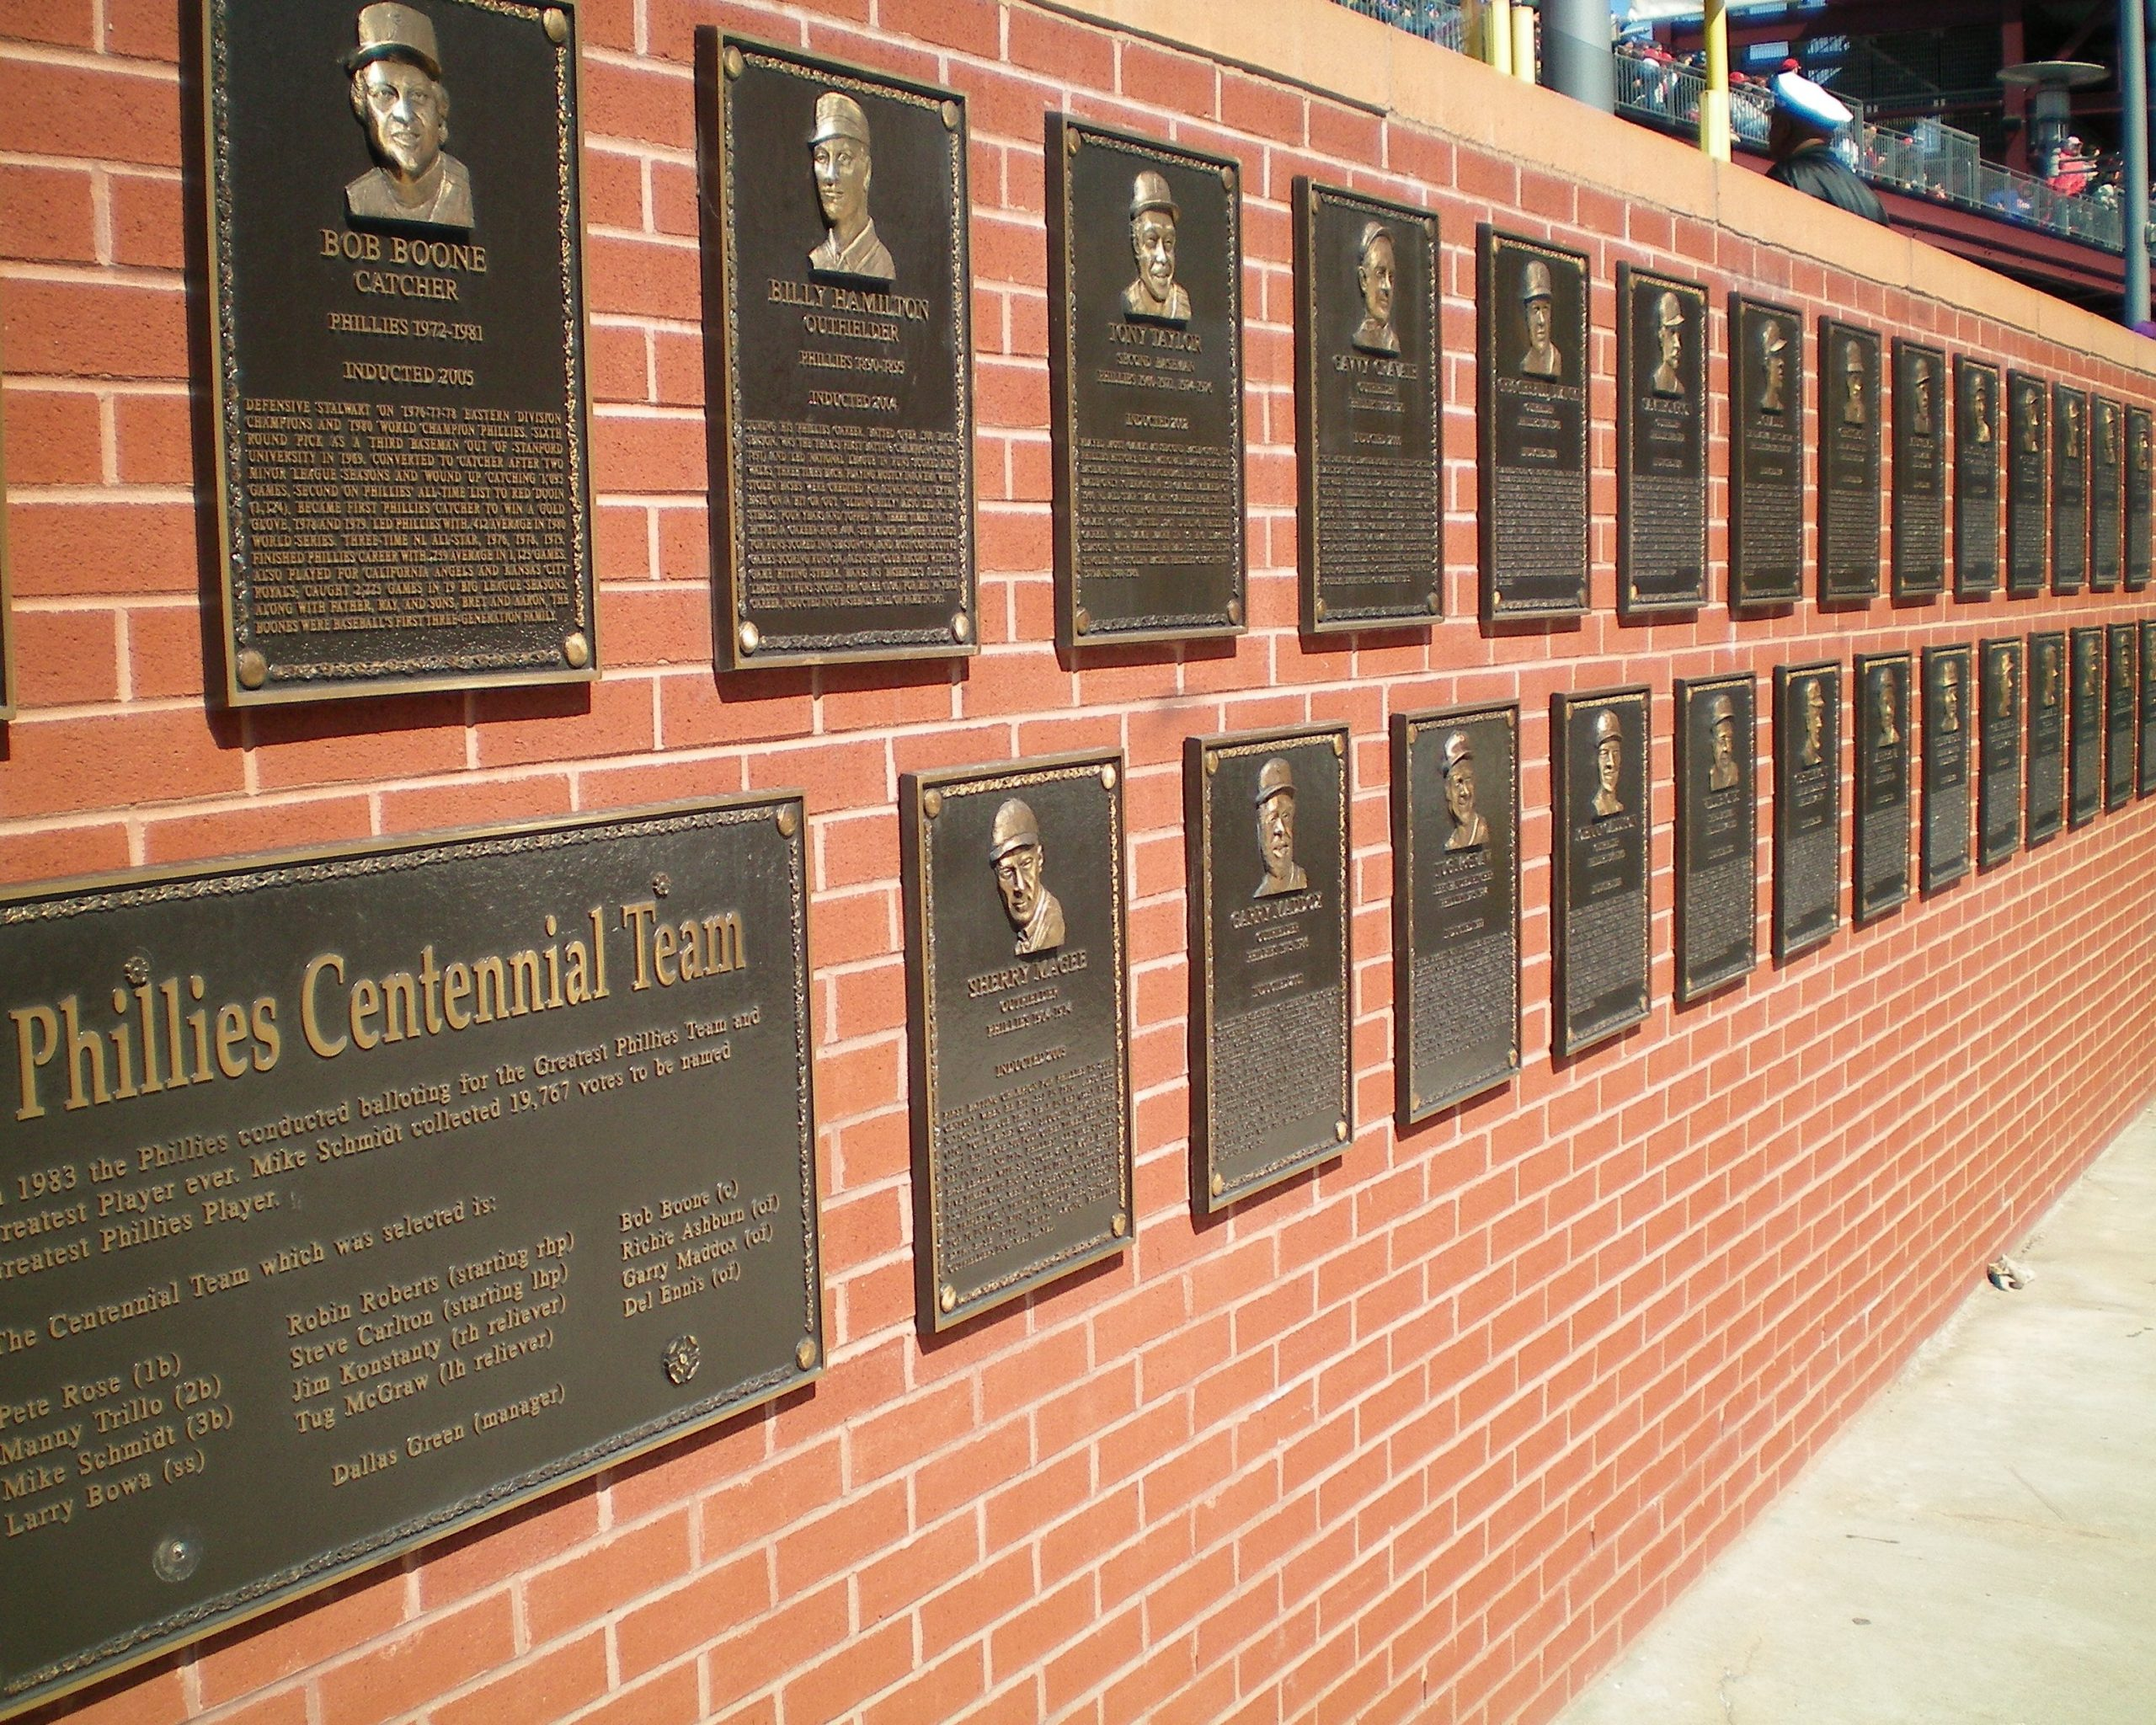 Gillick, Halladay to be inducted to Phillies' Wall of Fame